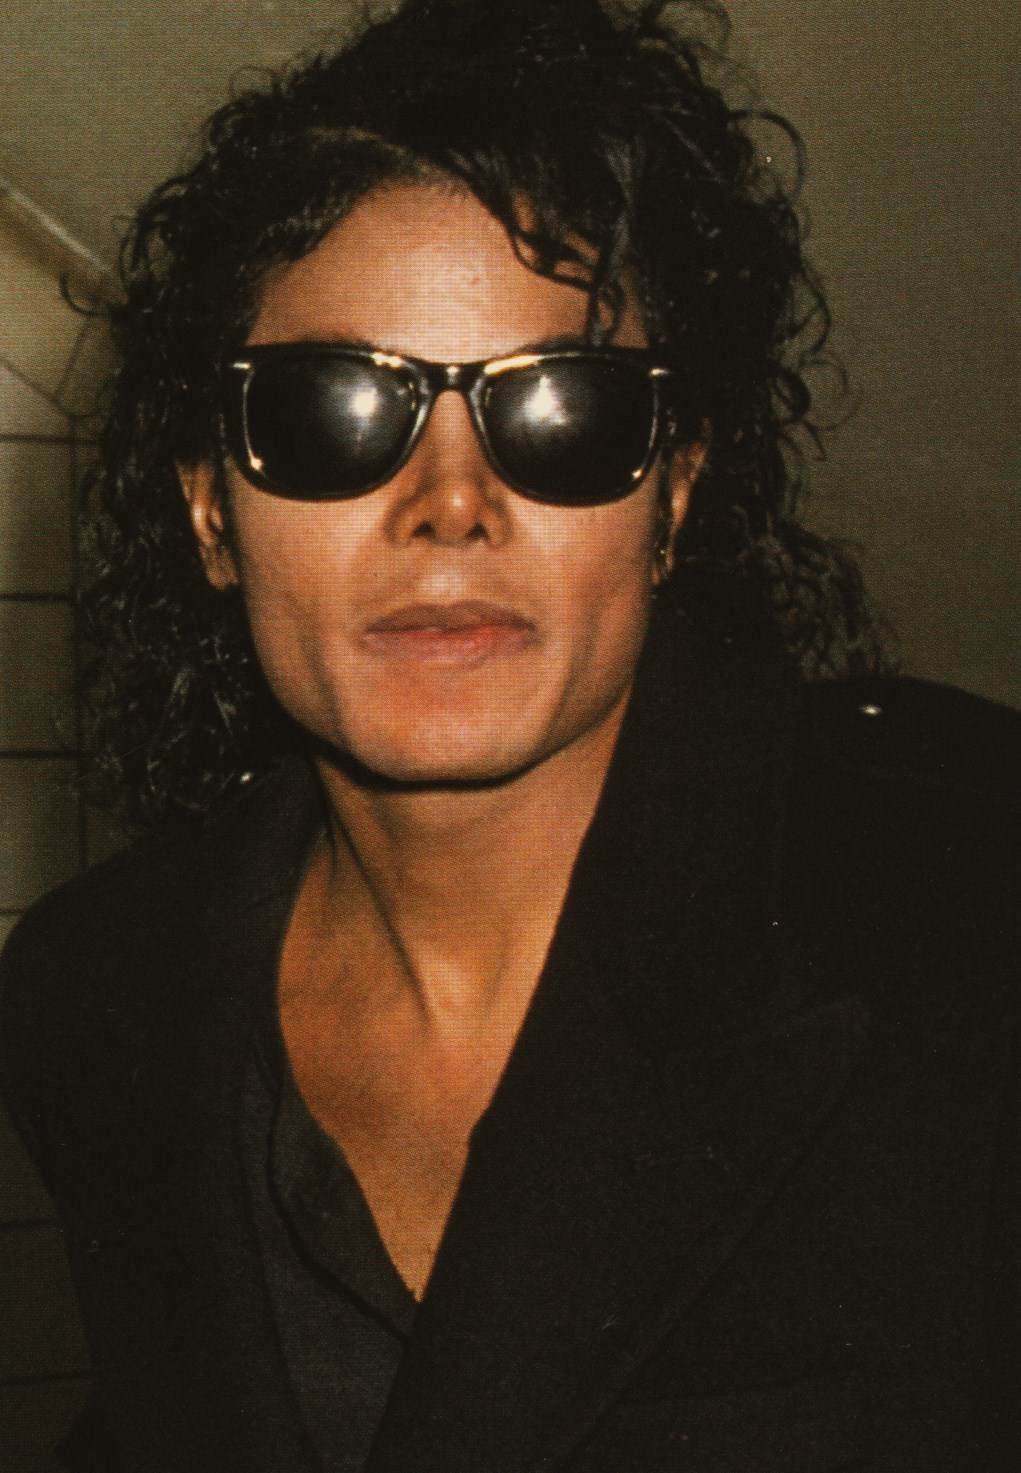 http://images4.fanpop.com/image/photos/16600000/mike-michael-jackson-16672823-1021-1473.jpg